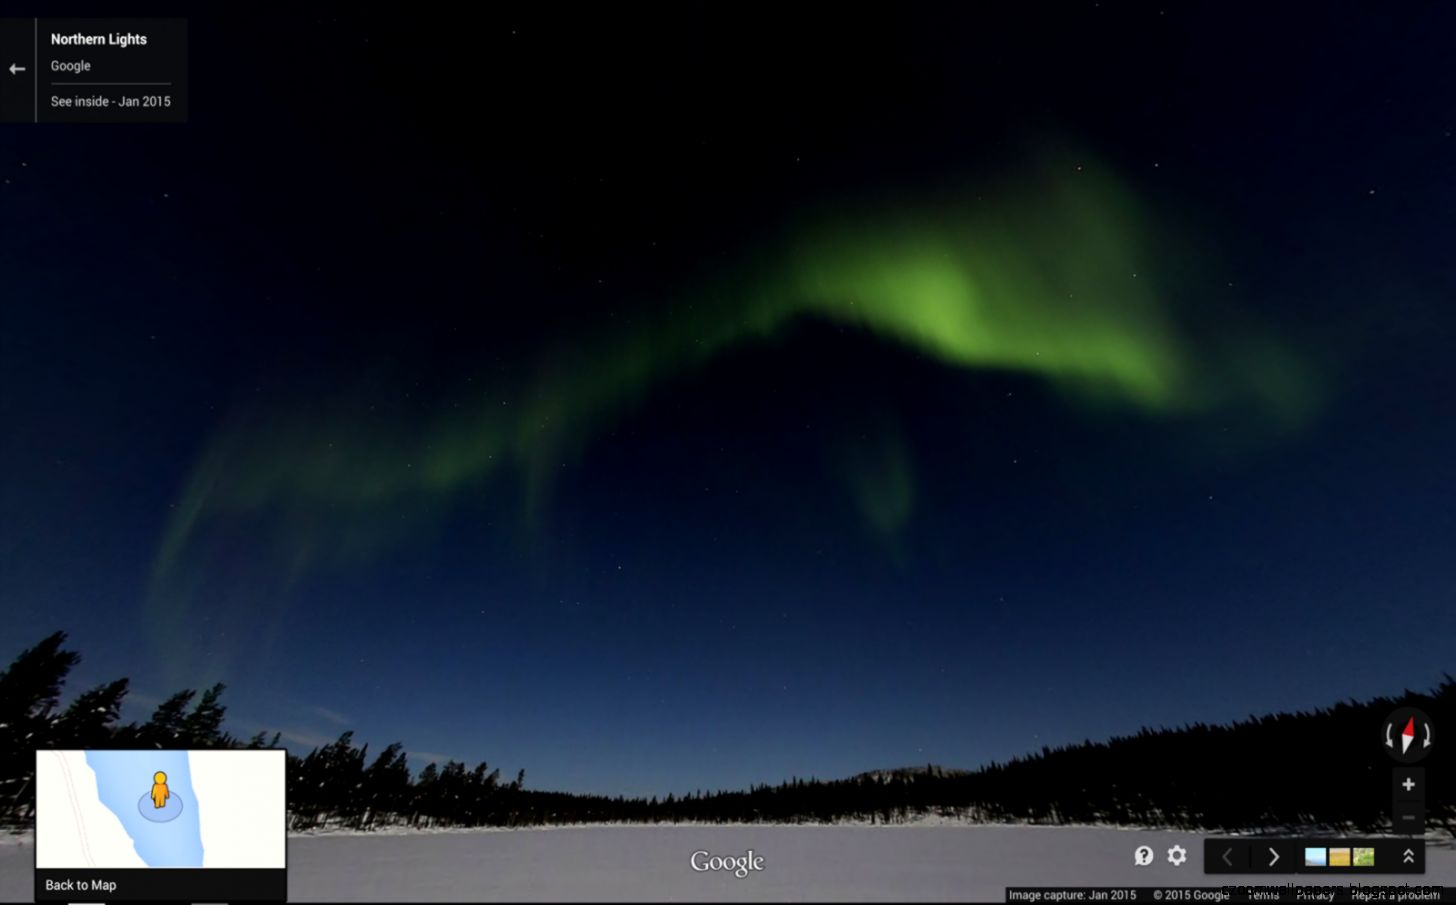 Google Lat Long The aurora borealis lights up Google Maps